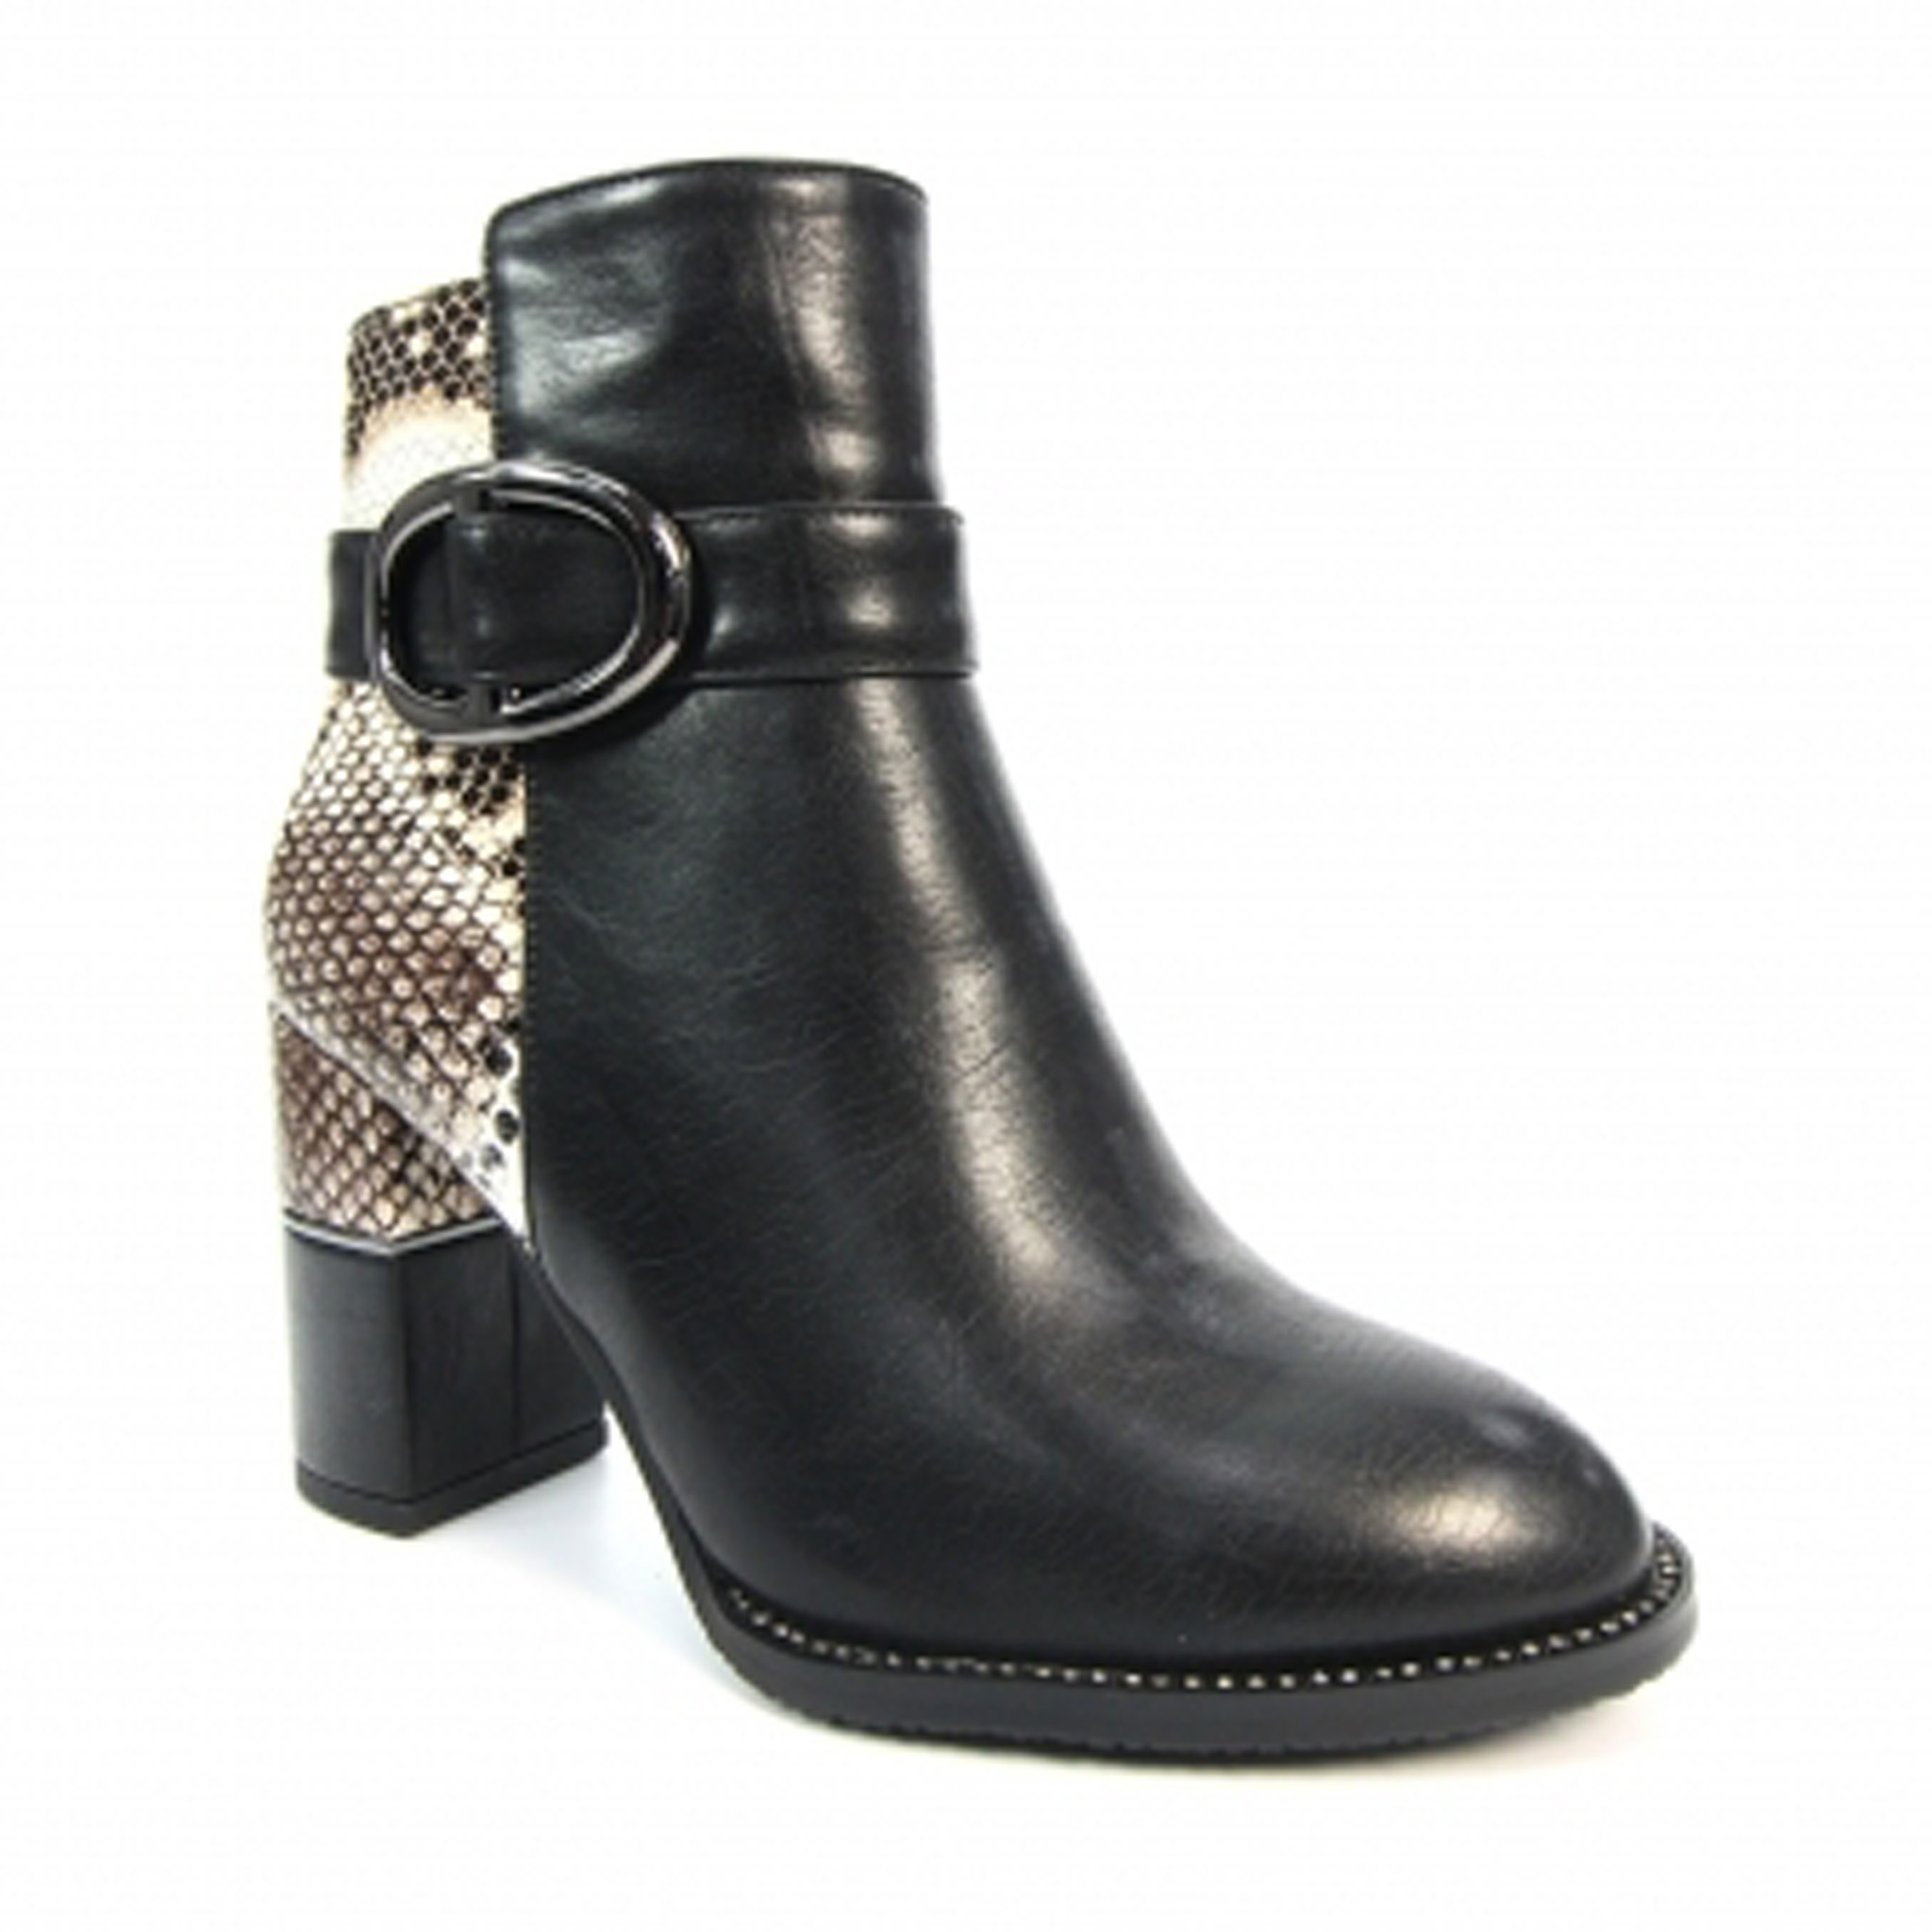 zetta-animal-print-heeled-boot-p4378-276